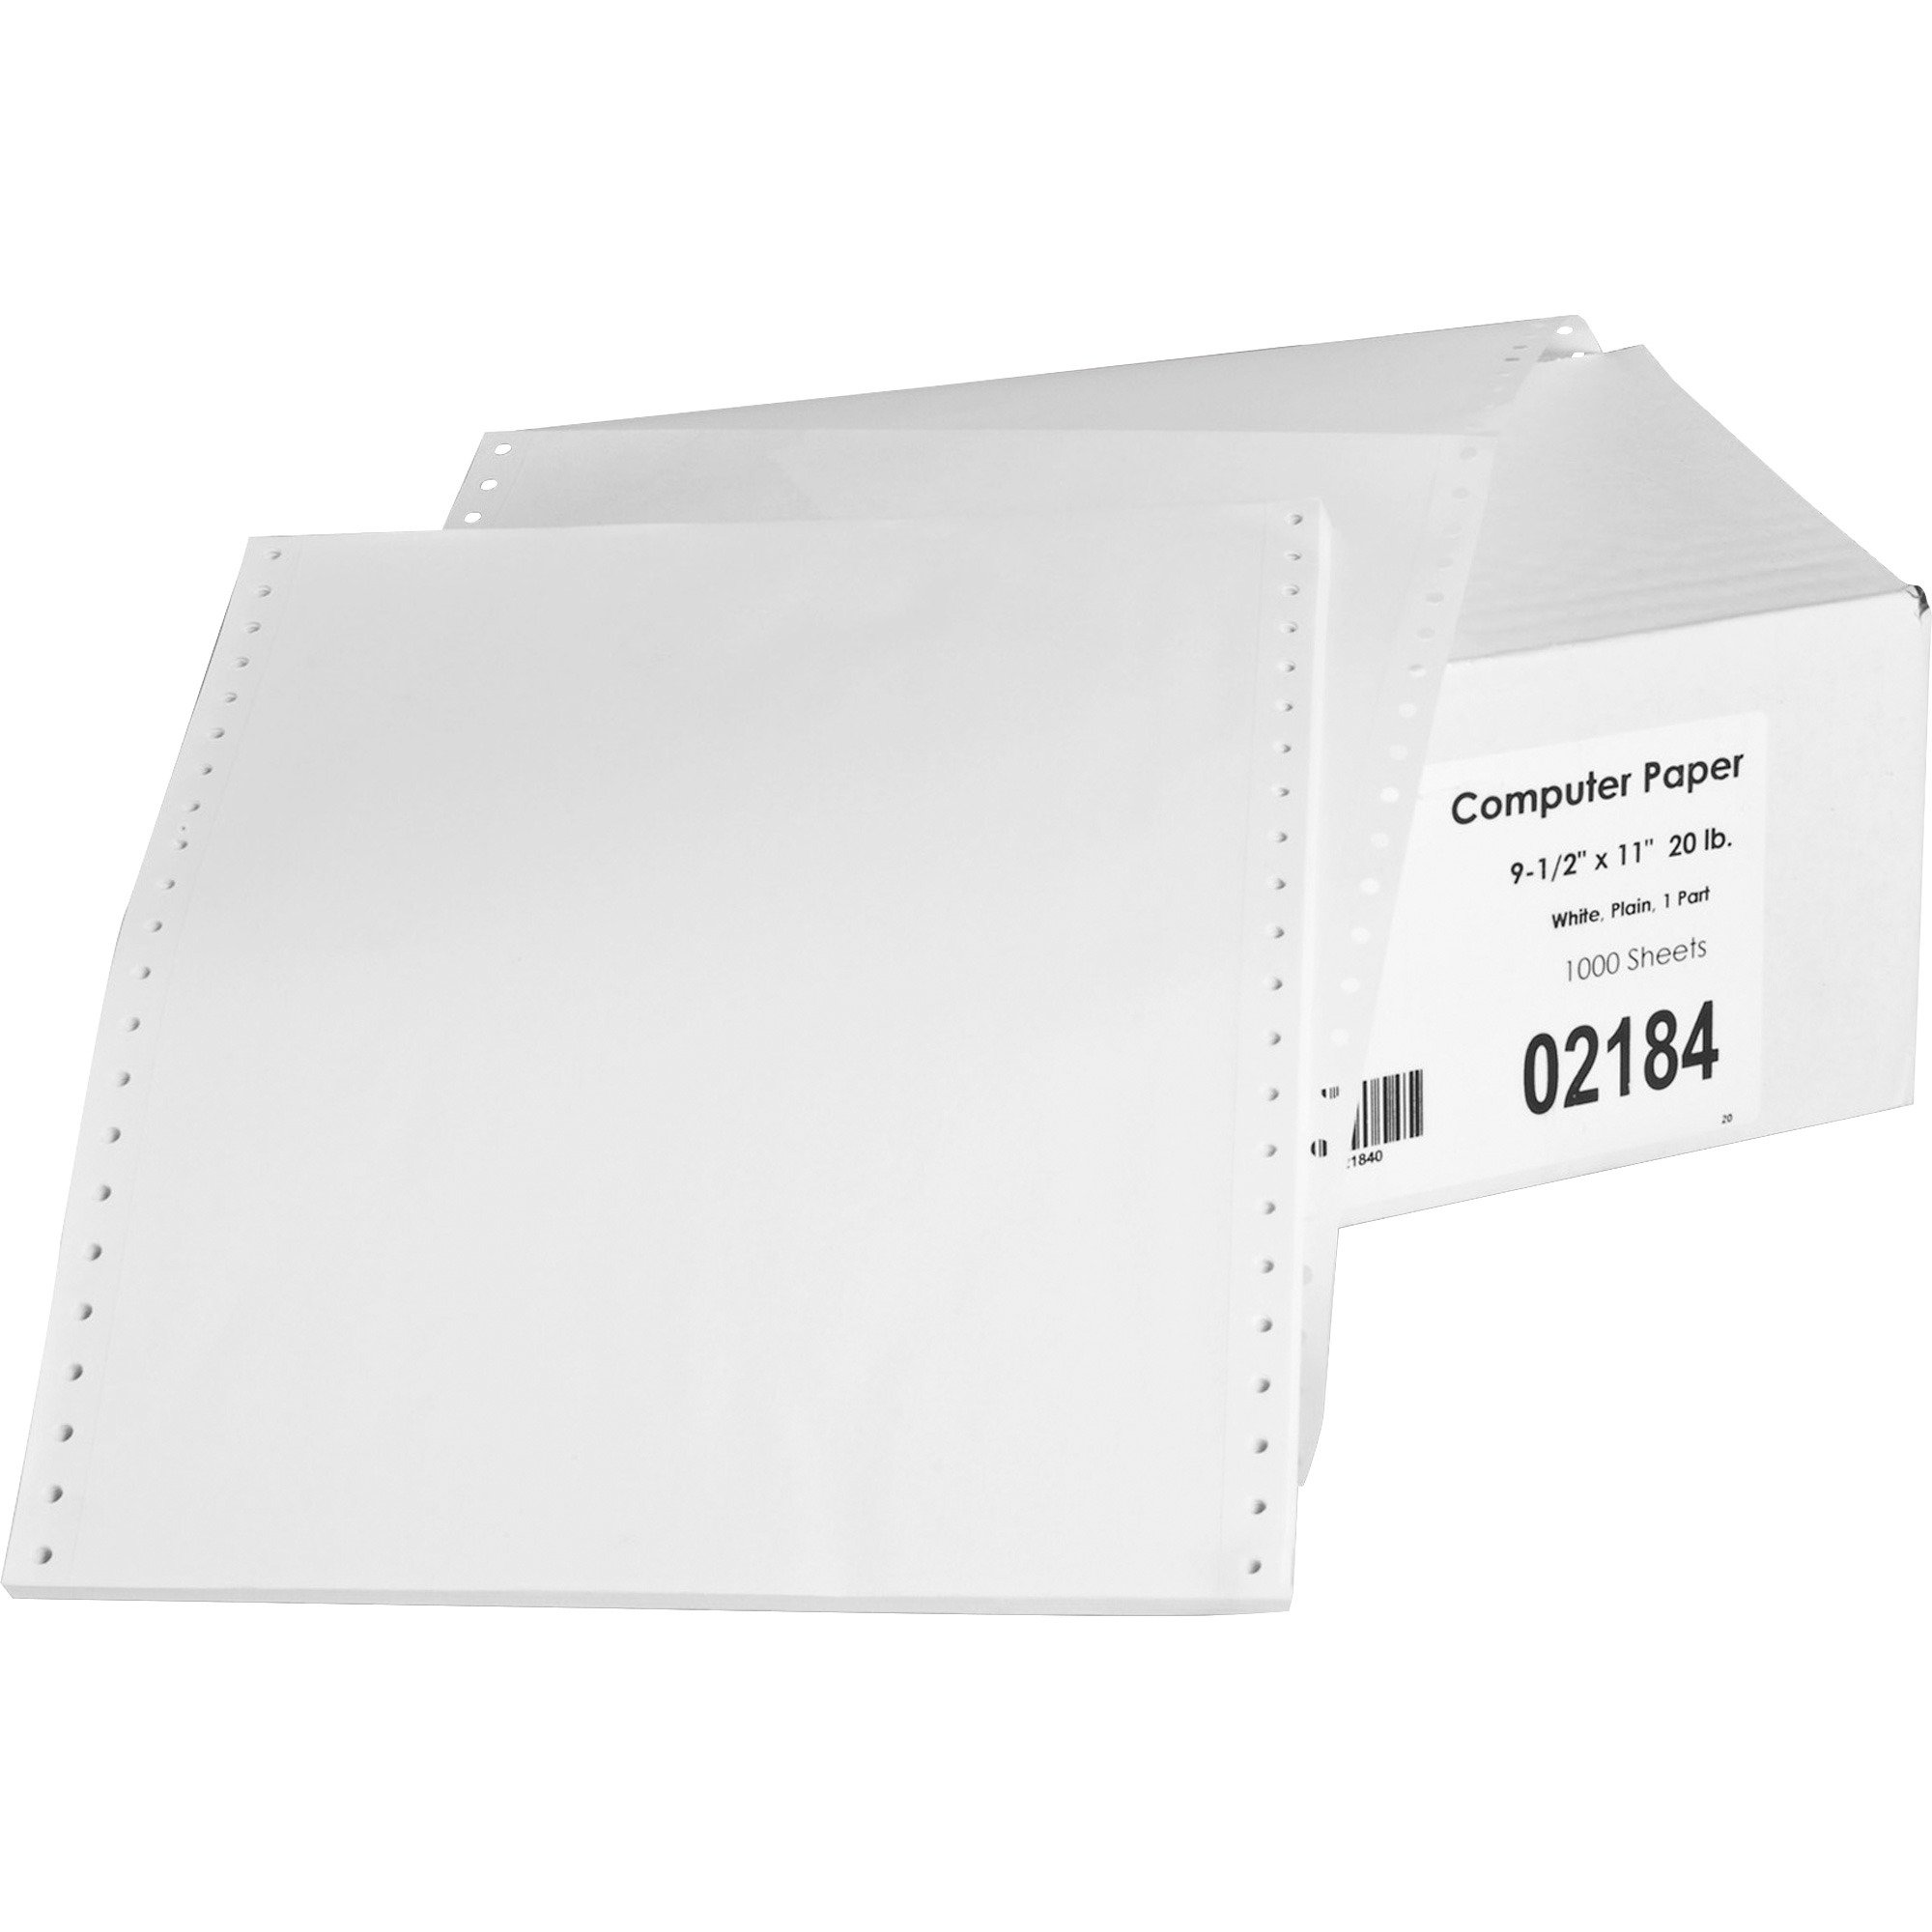 Sparco 02184 Feed Paper,Continuous,Plain,1-Part,9-1/2''x11'',1000/CT,WE